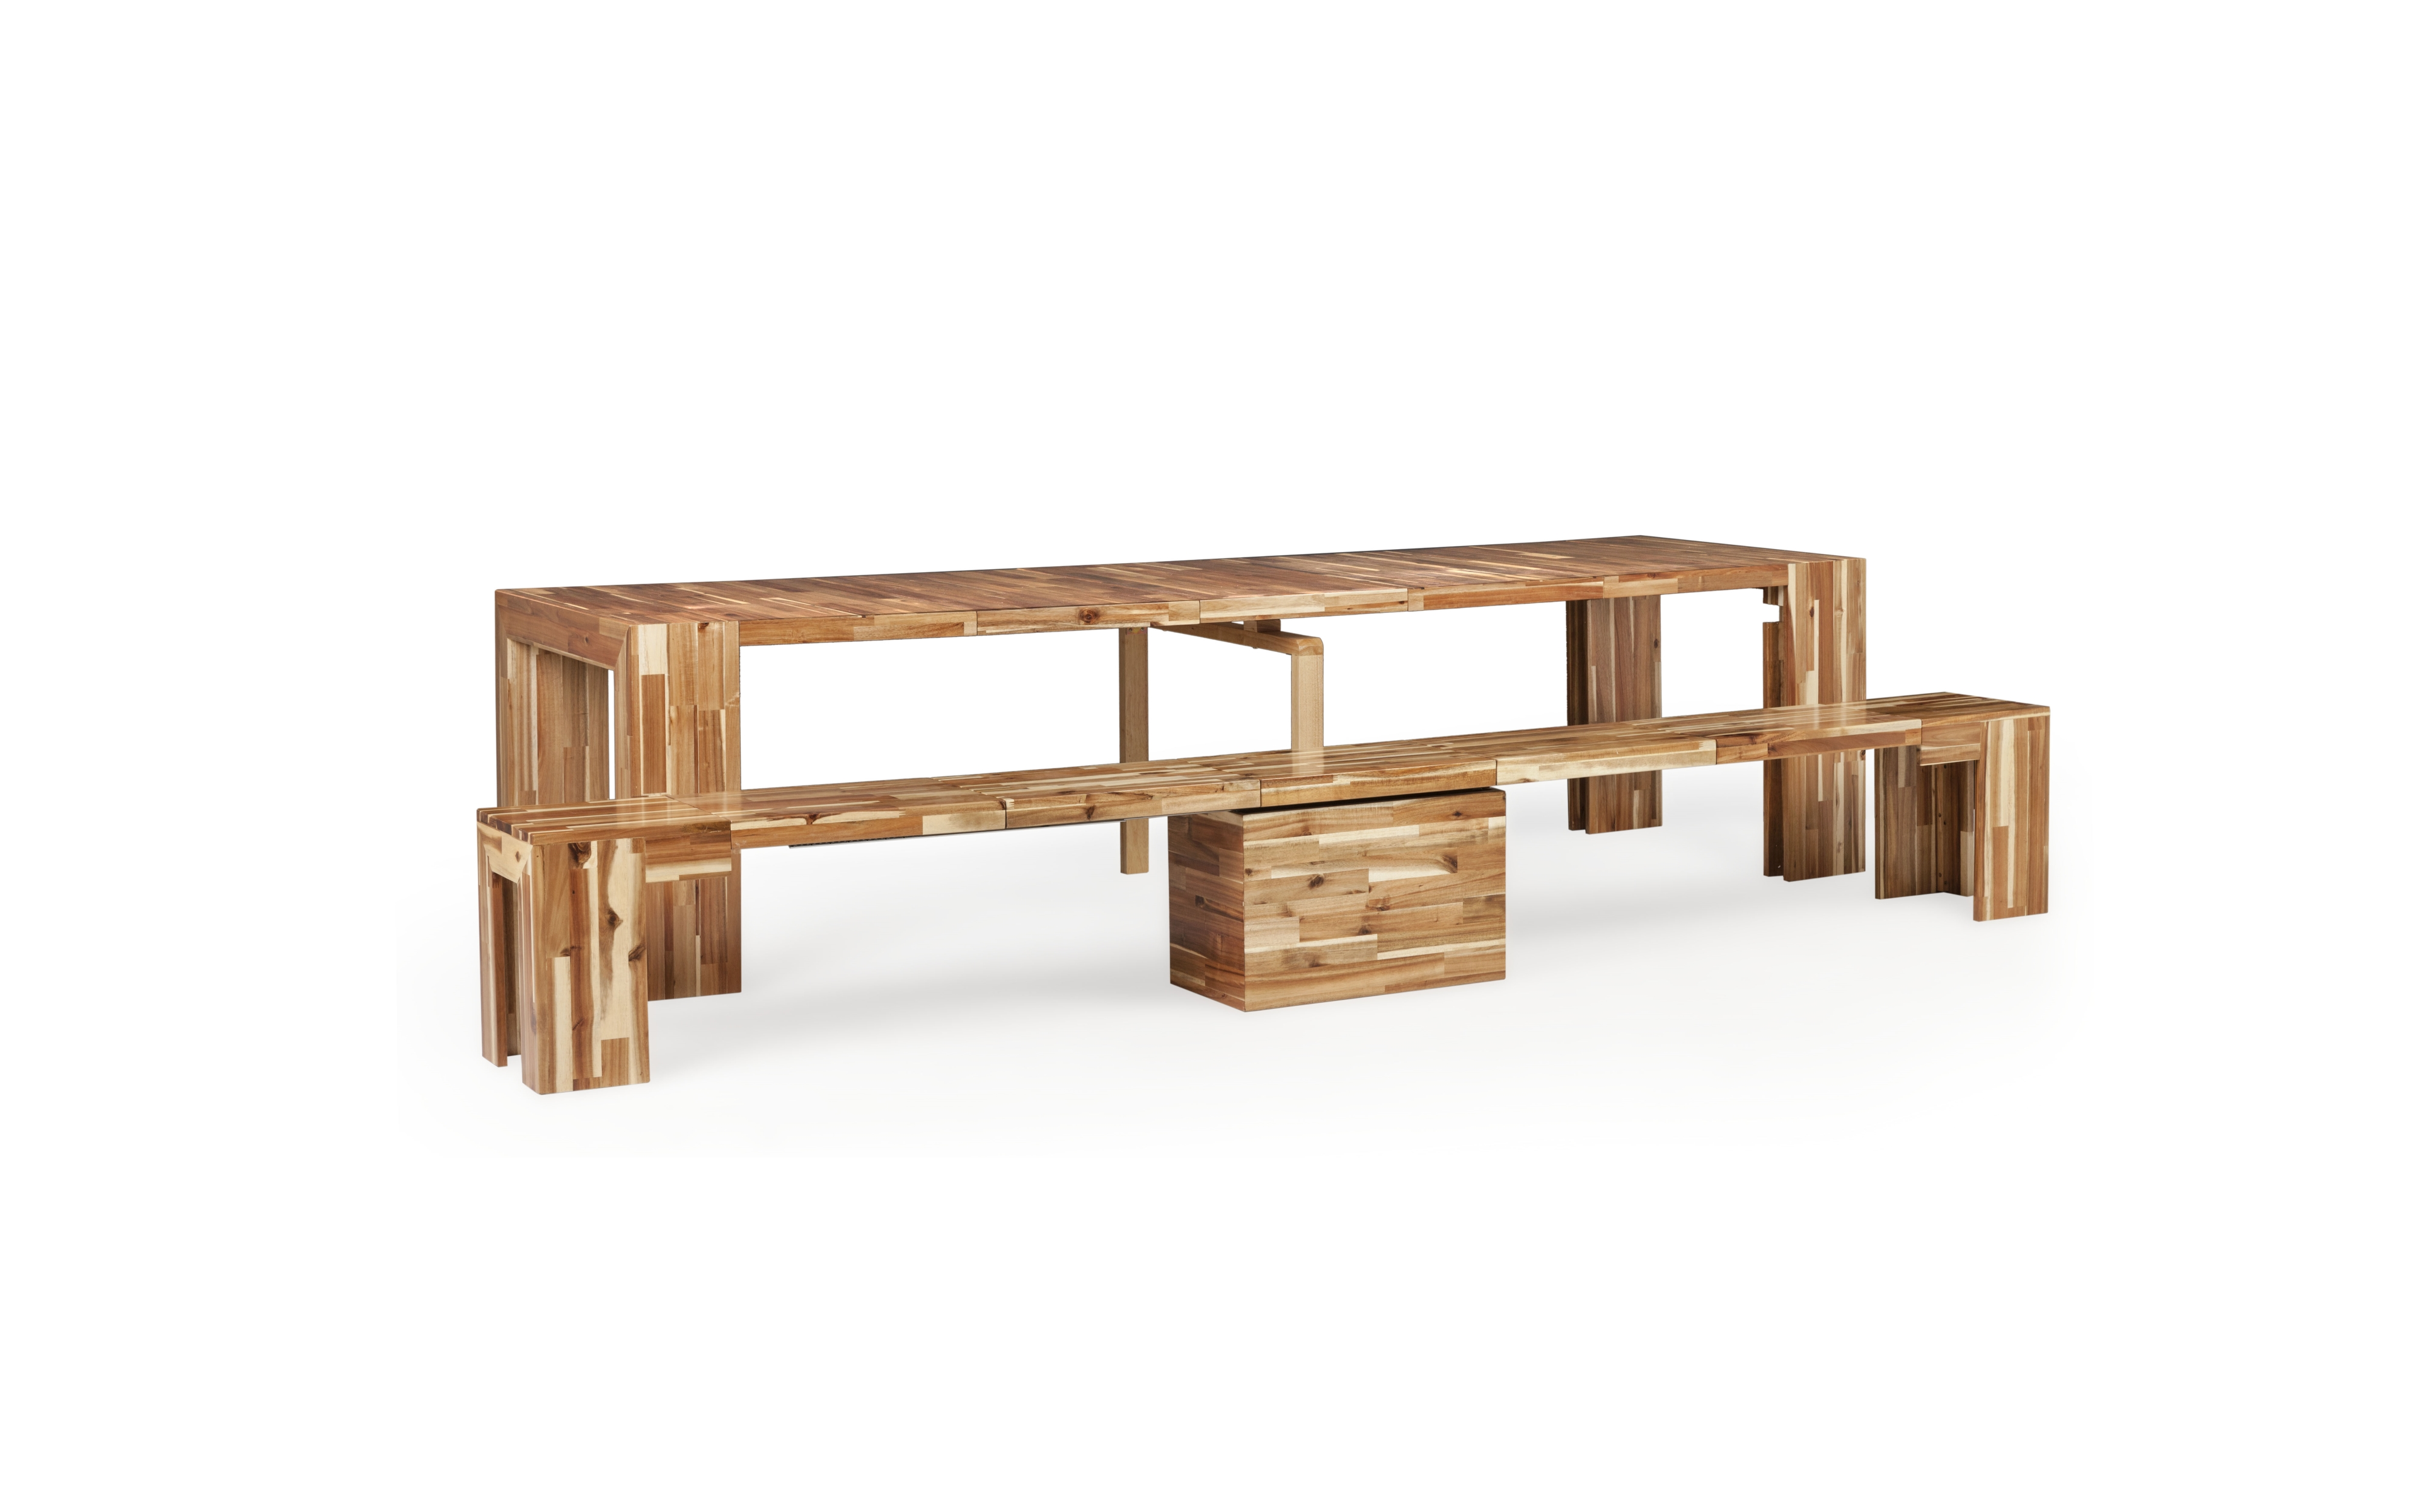 Transformer Coffee Table.Transformer Table 2 0 6 Tables In 1 Design